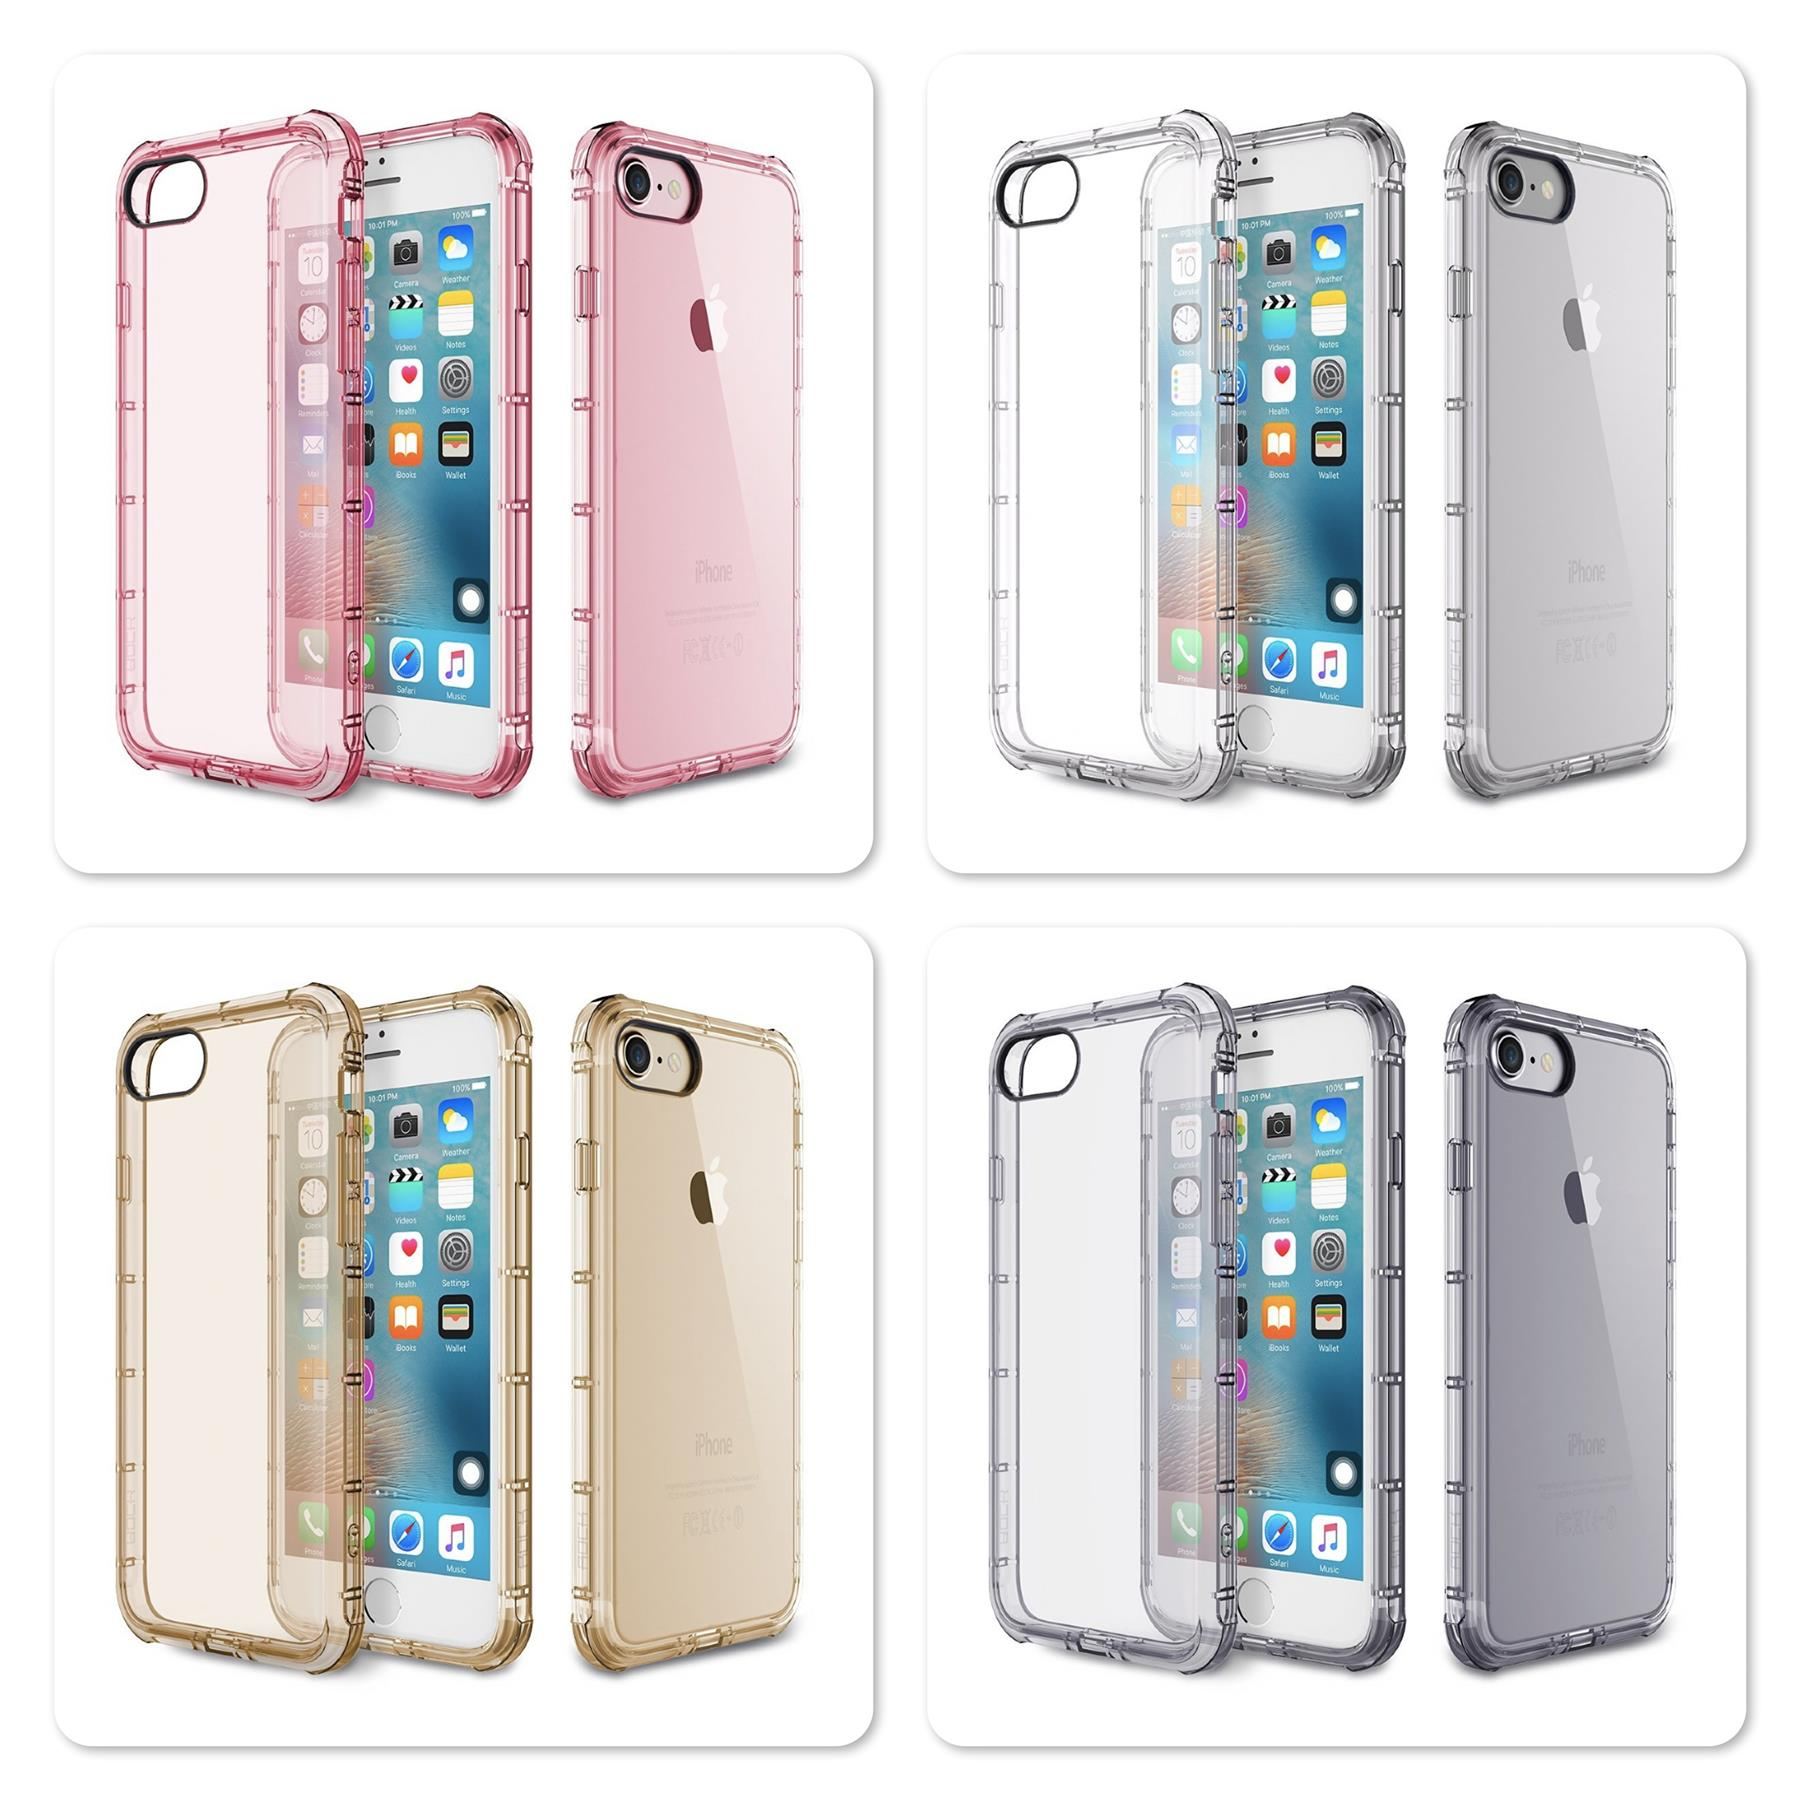 Apple iPhone 7 4.7' Rock Fence series Protective Case